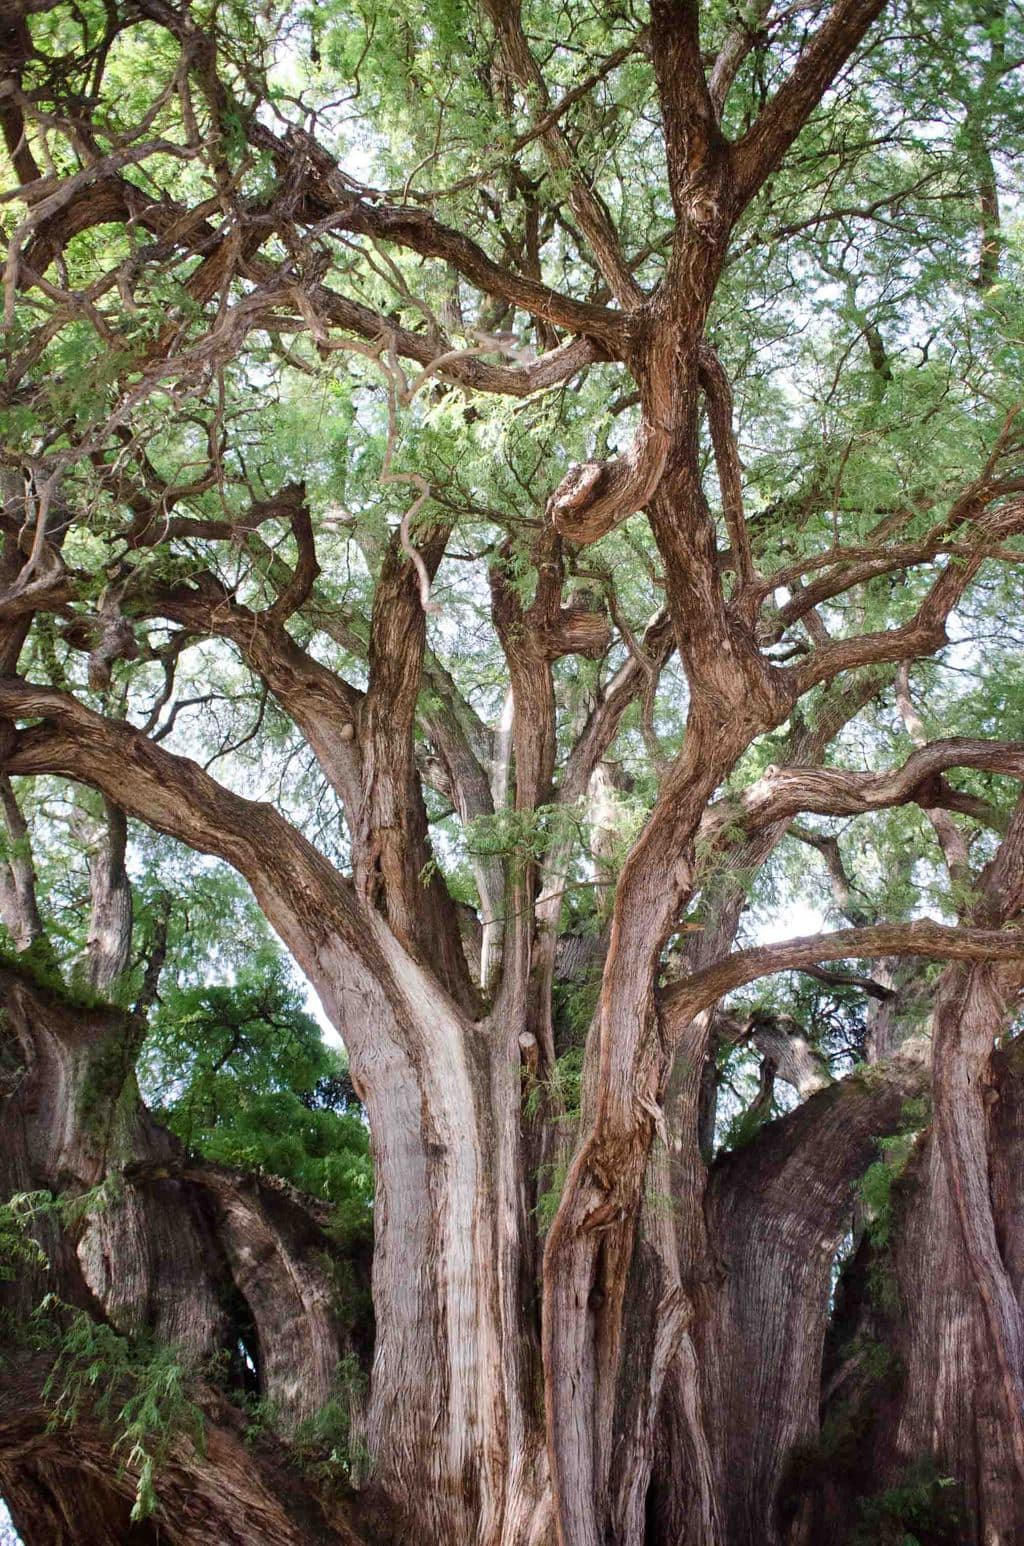 The Tule tree, largest tree in the world in Oaxaca, Mexico